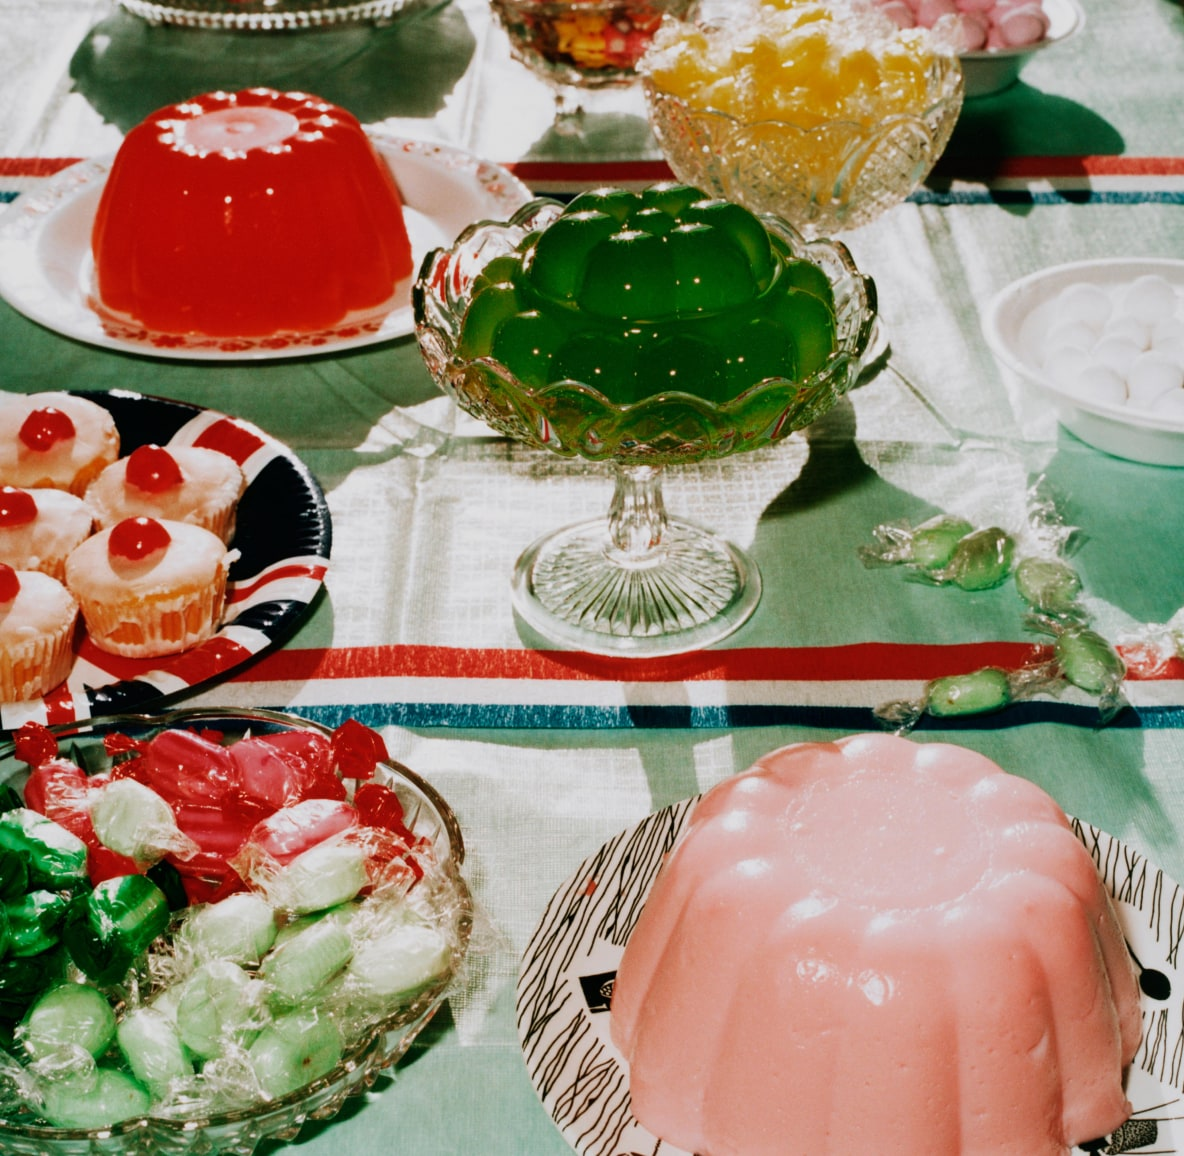 Tablescape featuring colored gelatin molds, cupcakes and candy